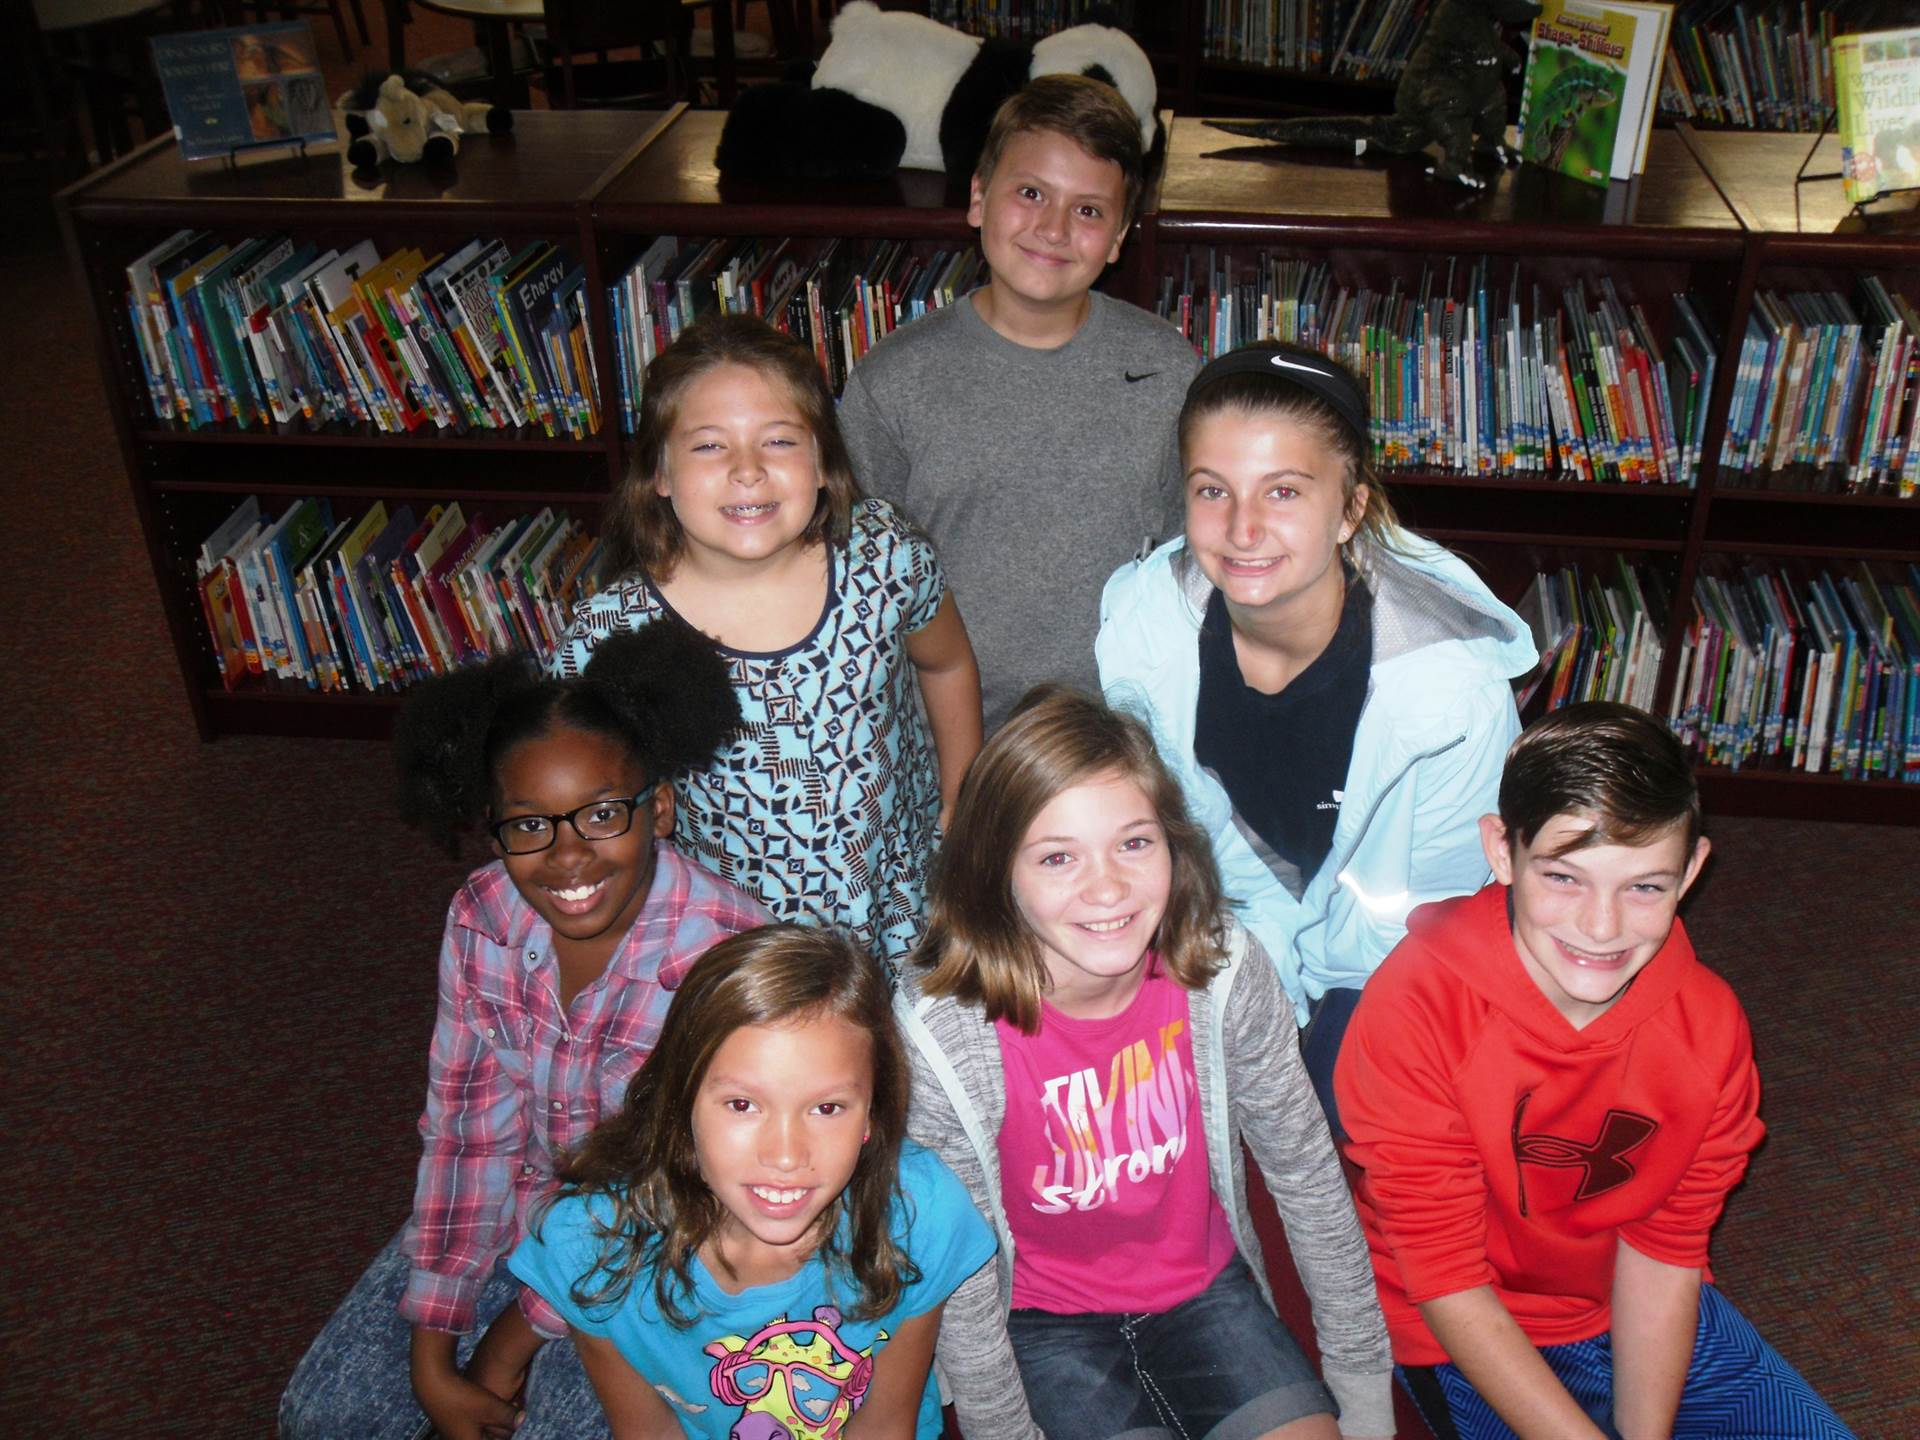 WLES students in the media center